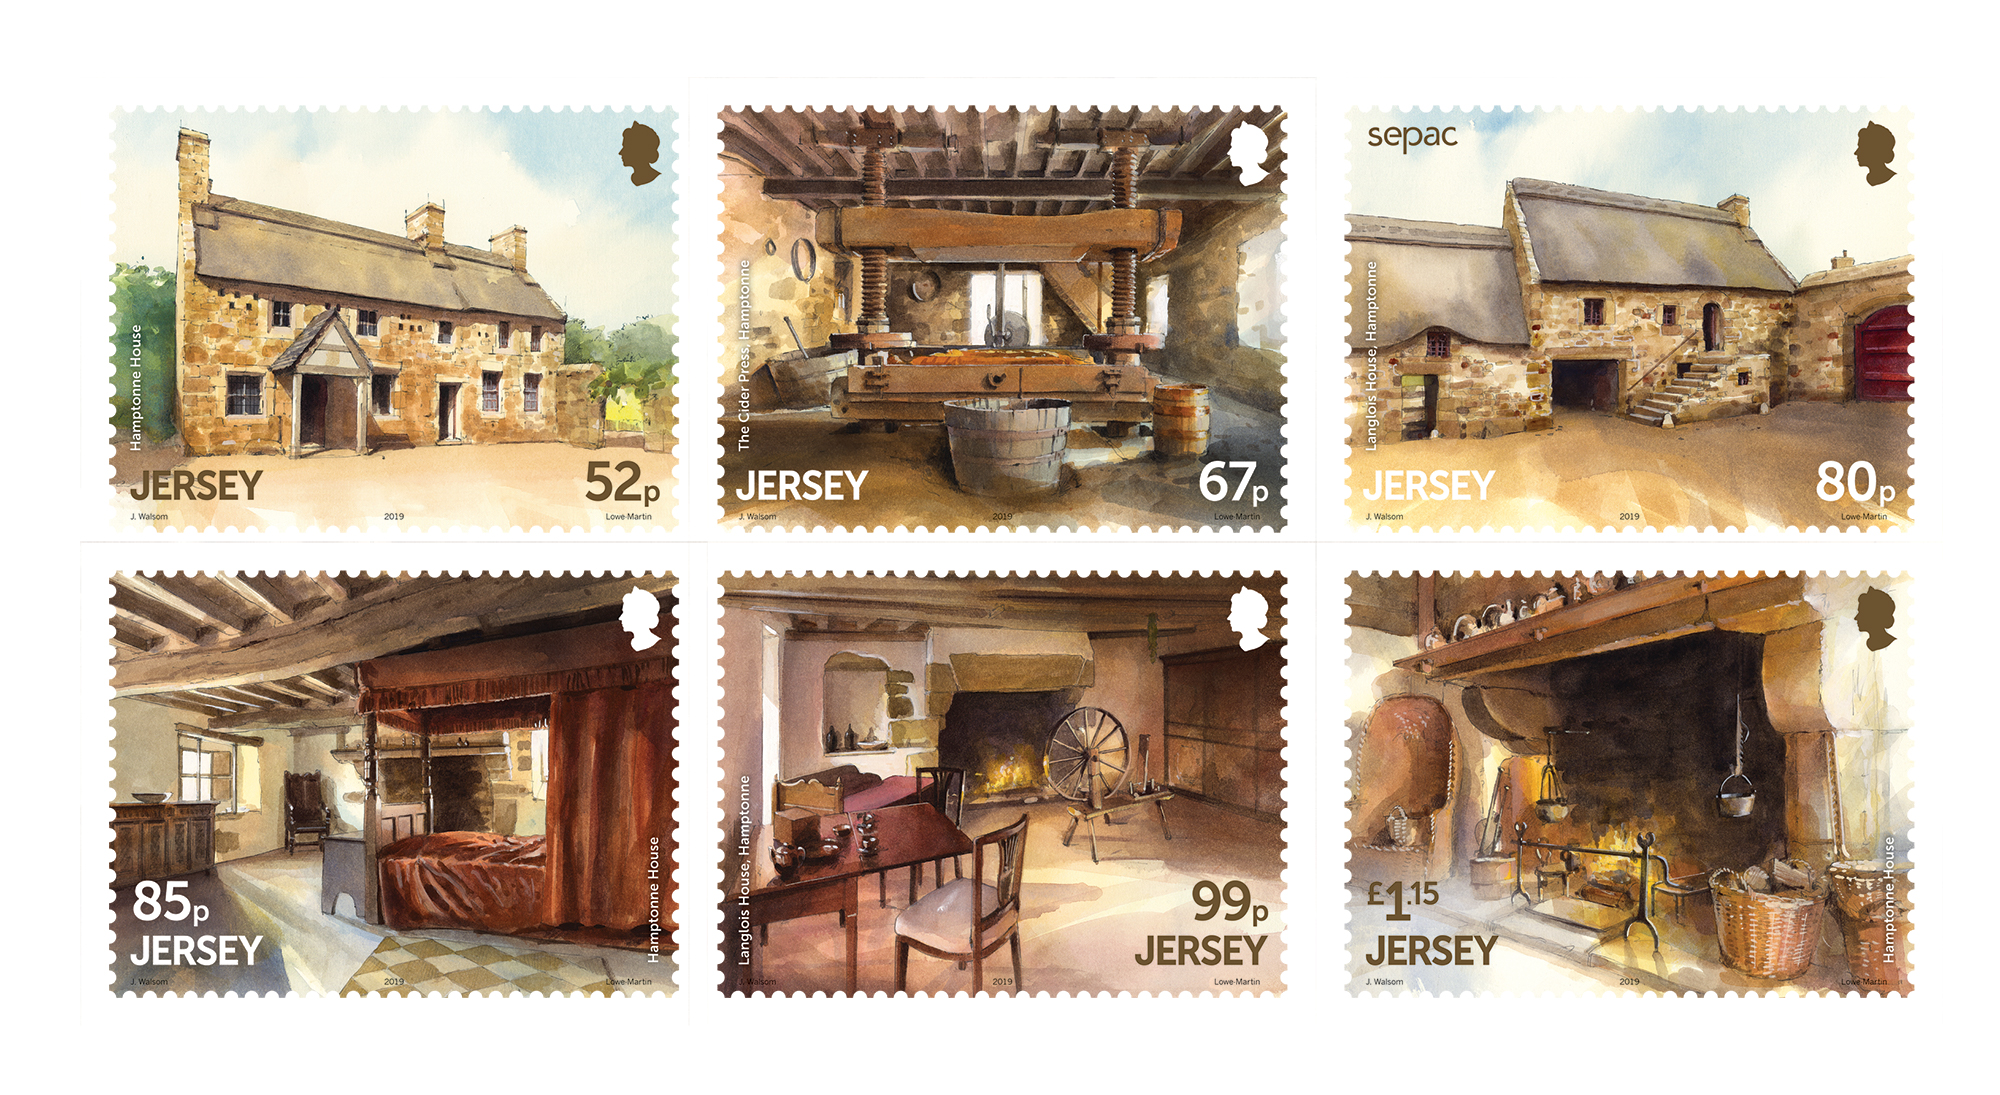 Hamptonne Farm to feature on Jersey stamps | SEPAC Stamps